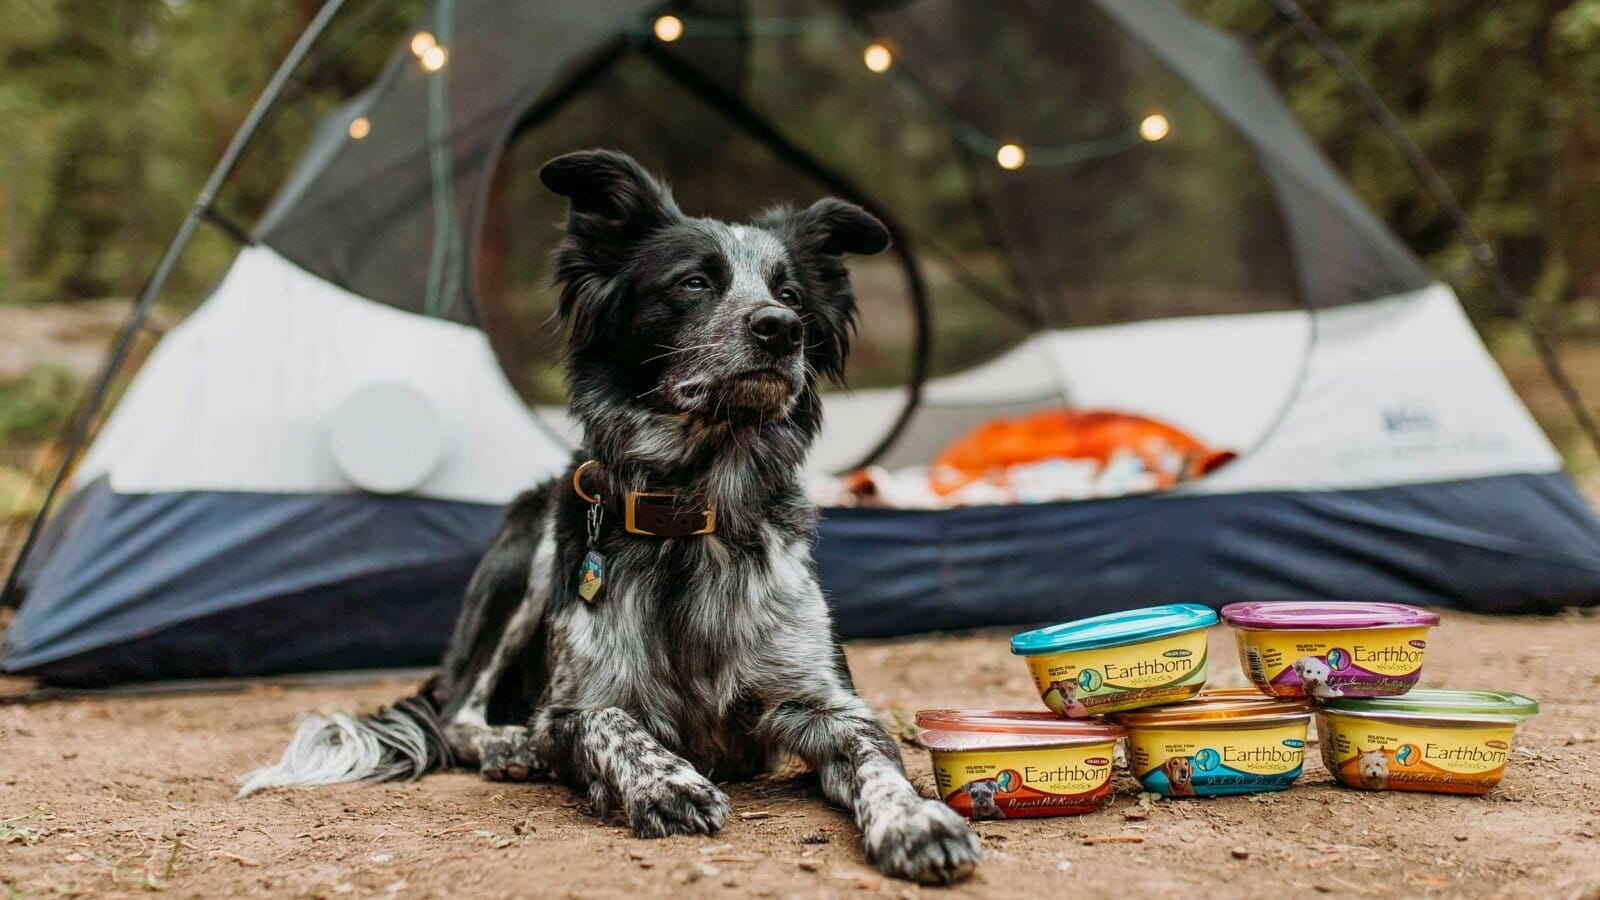 Dog sitting next to a containers of Earthborn Holistic dog food and a tent